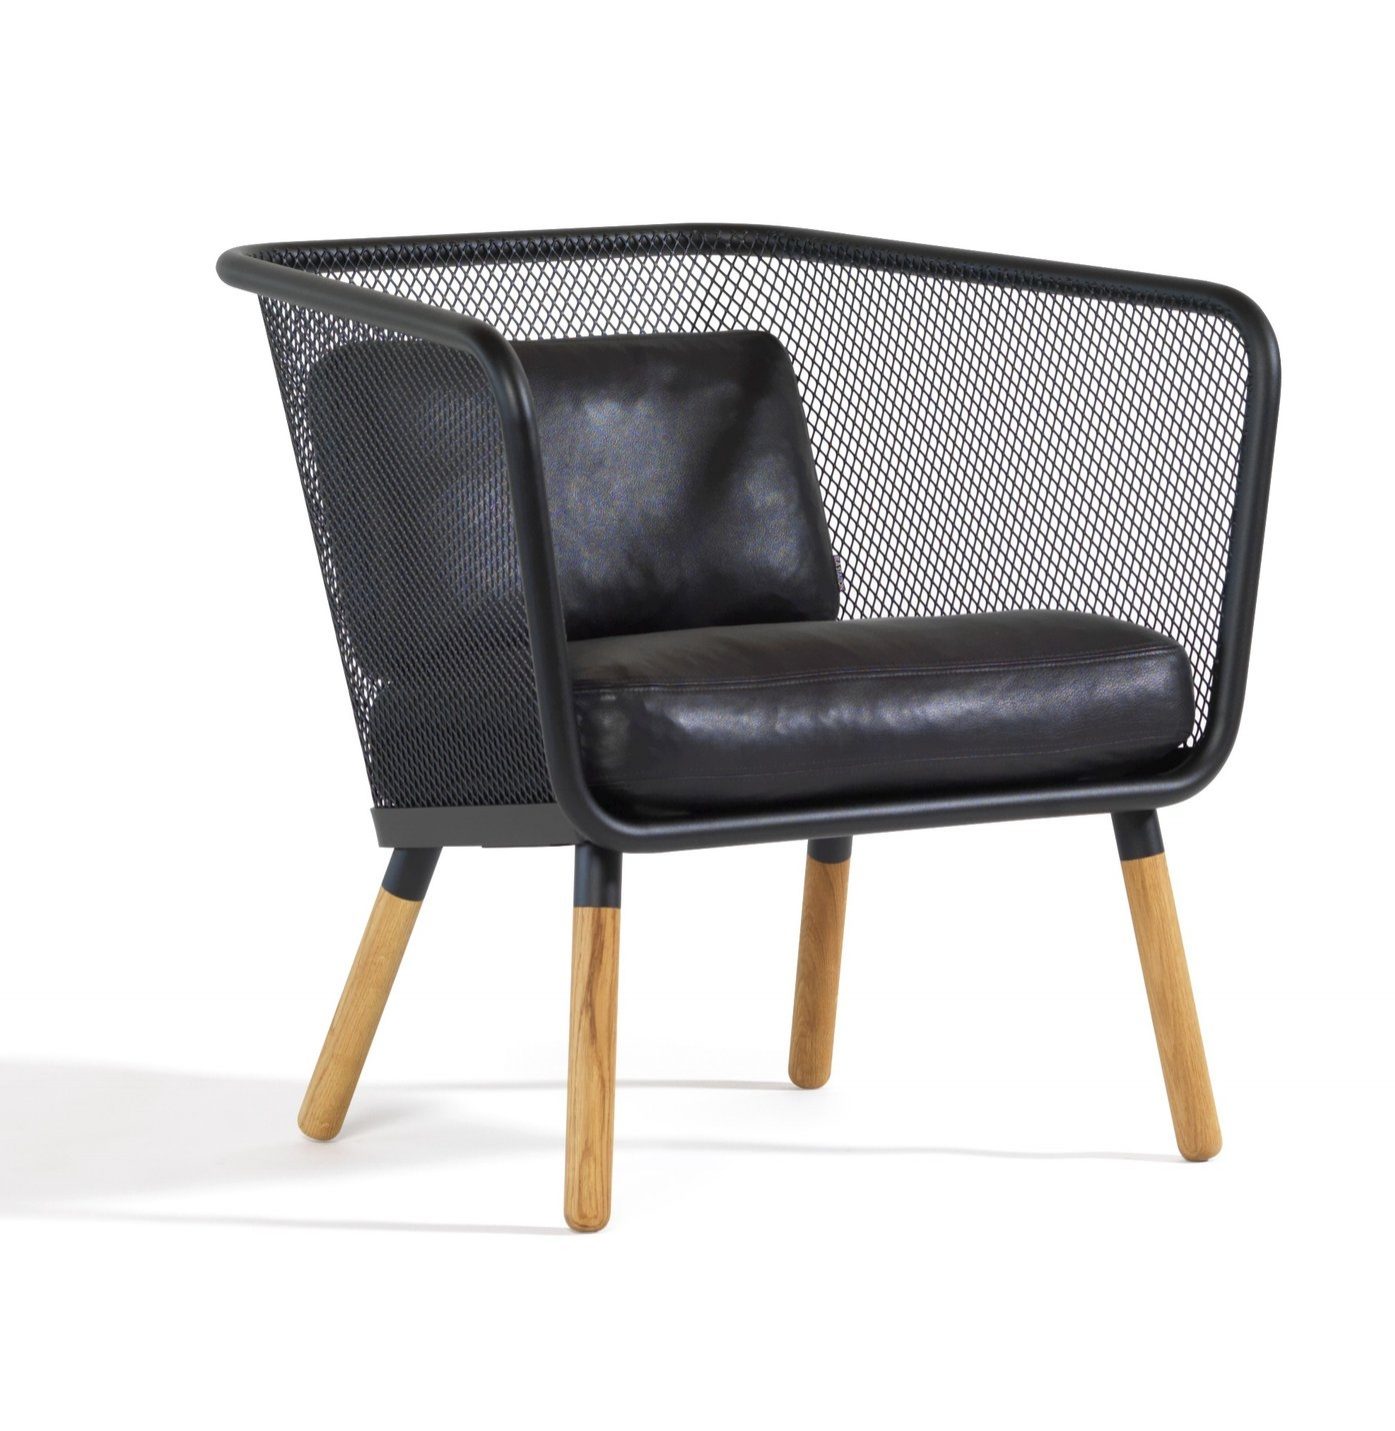 Honken –Small.  A generously spacious armchair, the Honken Small becomes a space of relaxation. Constructed with durable steel and expanded metal, Honken is a fusion of traditional wood with modern, futuristic metals. Image: Blå Station